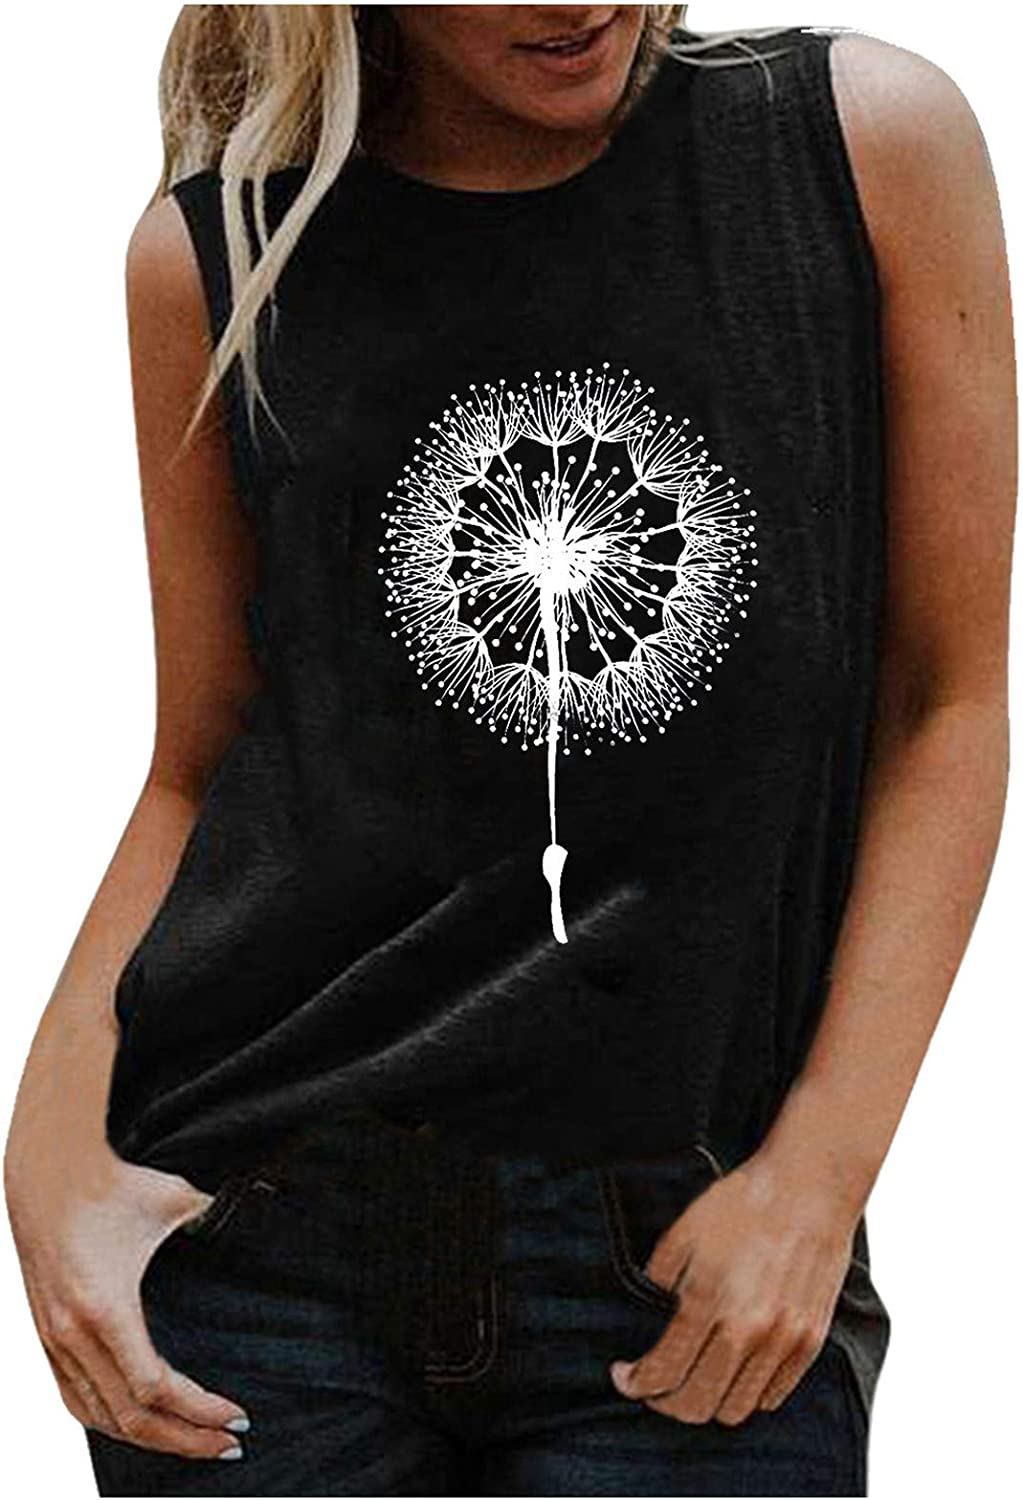 AODONG Tank Tops for Women, Womens Casual Fashion Summer Printed Sleeveless Loose Fit Tunic Tee Blouse Tops Vest Tshirt